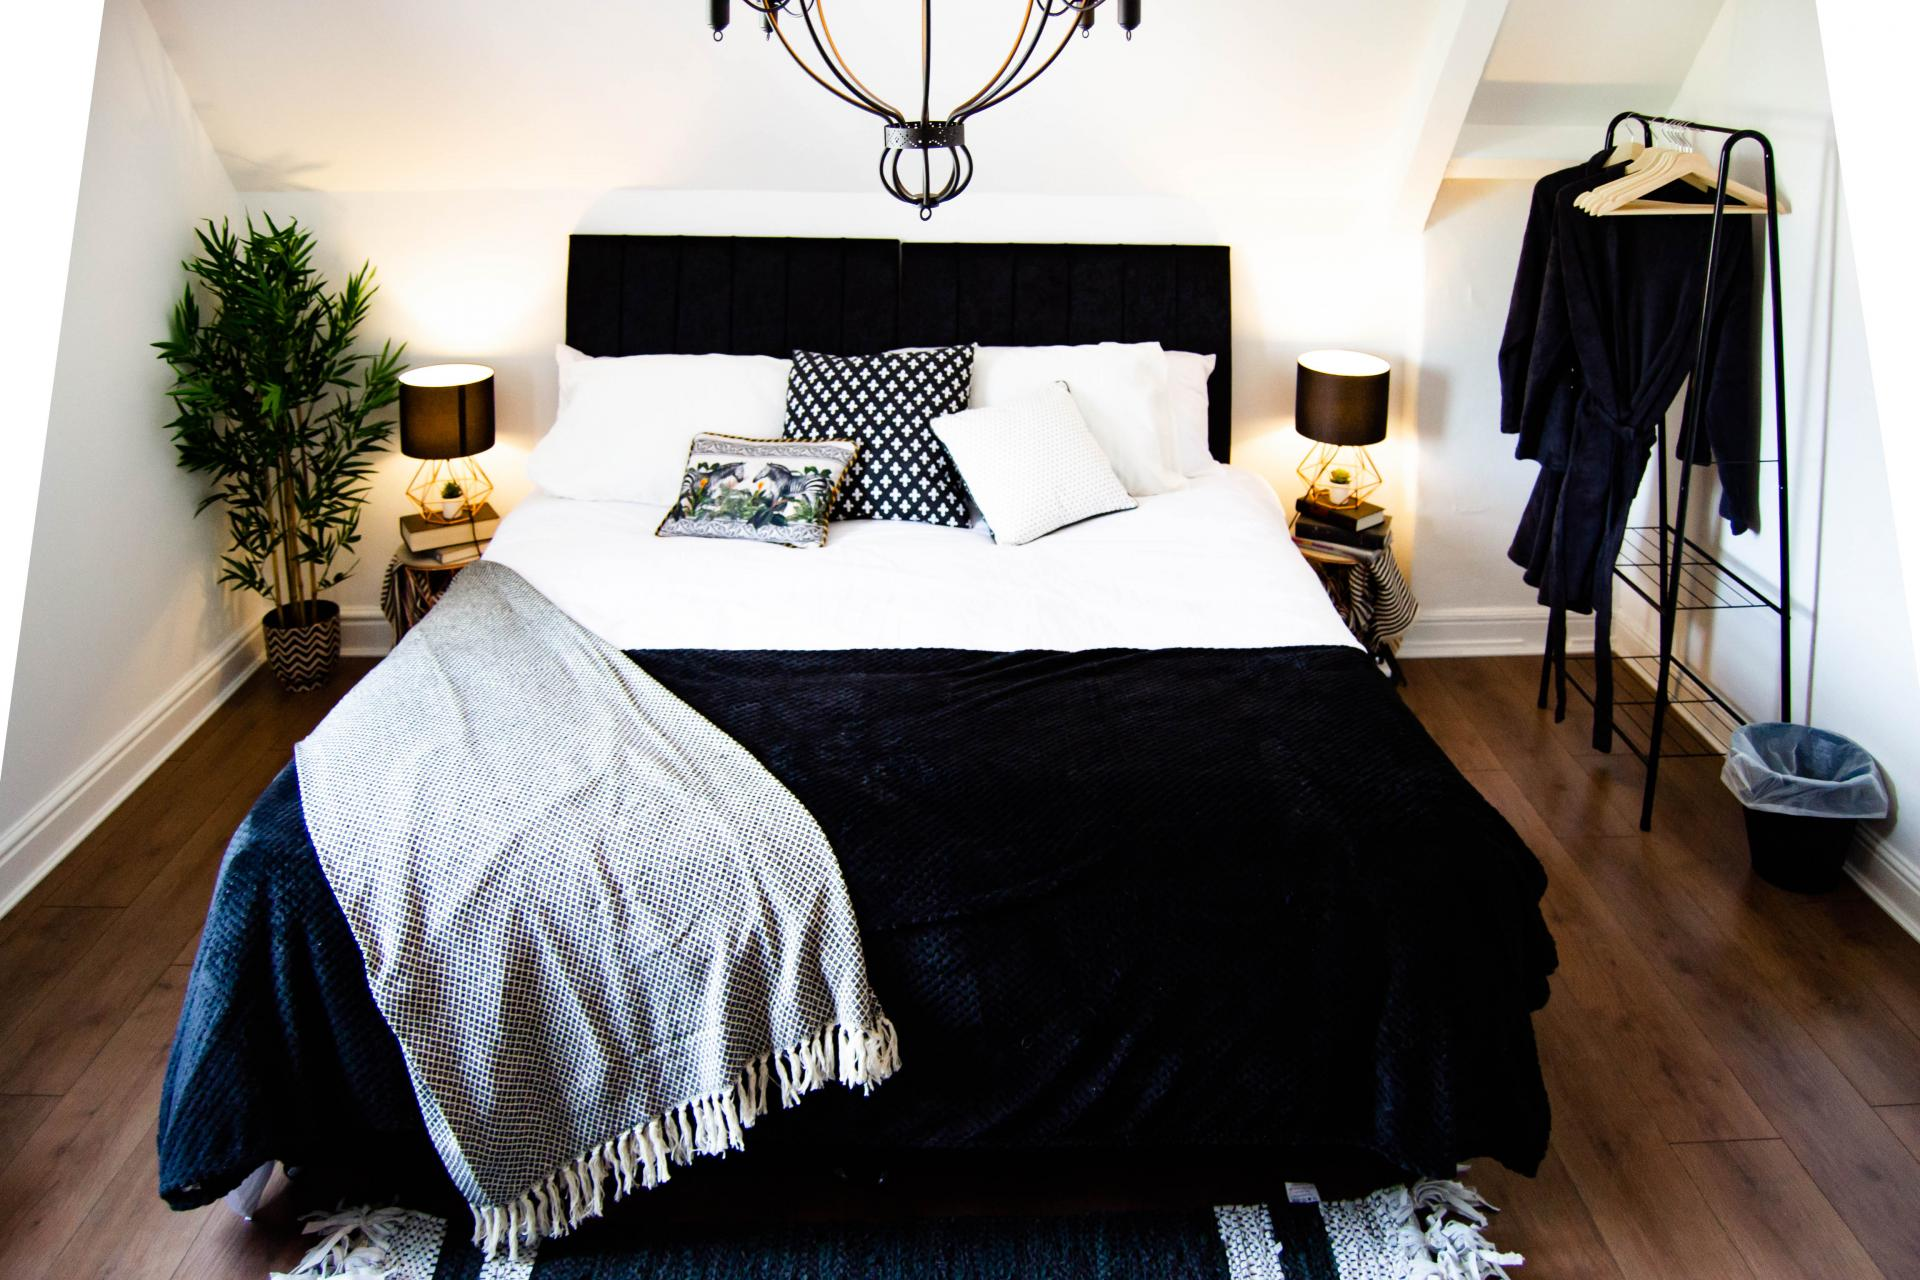 Bed at Clare Road Apartment - Citybase Apartments